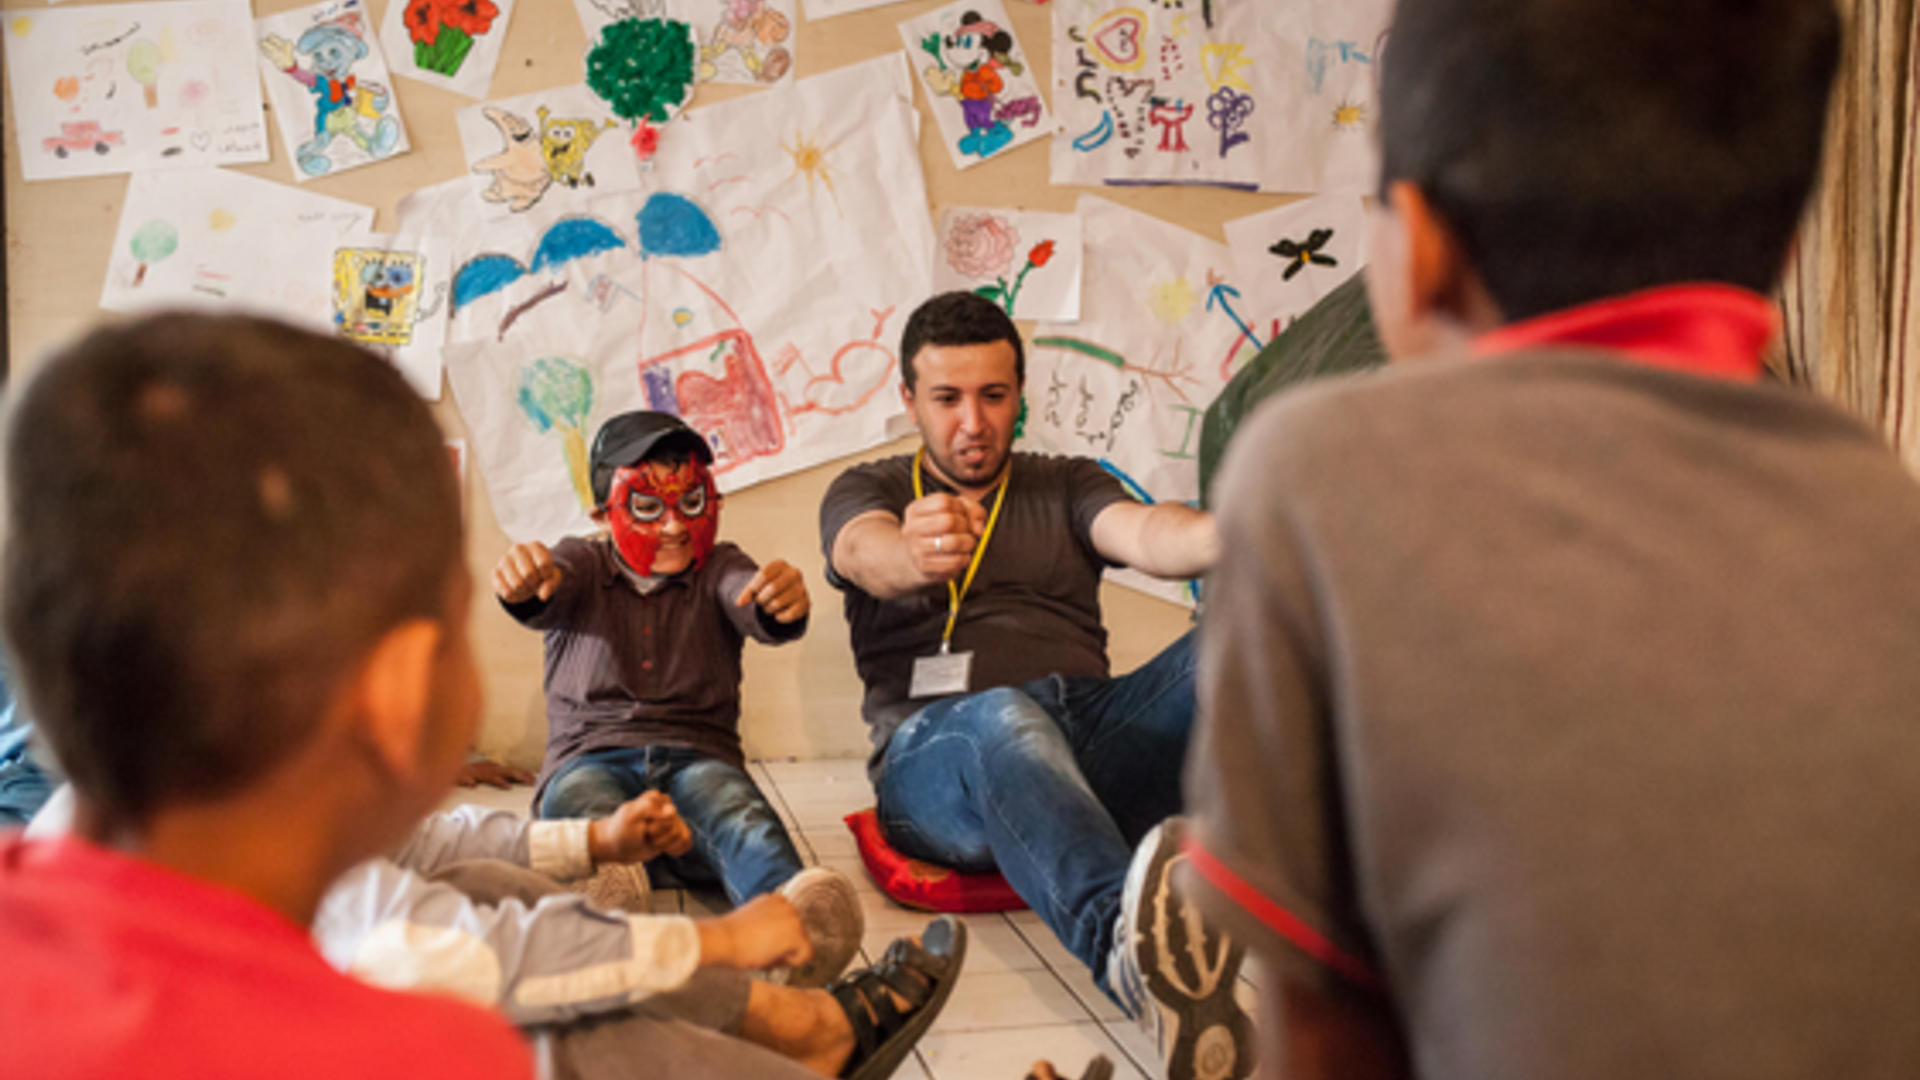 Syrian refugee boys in Beirut play at IRC play space